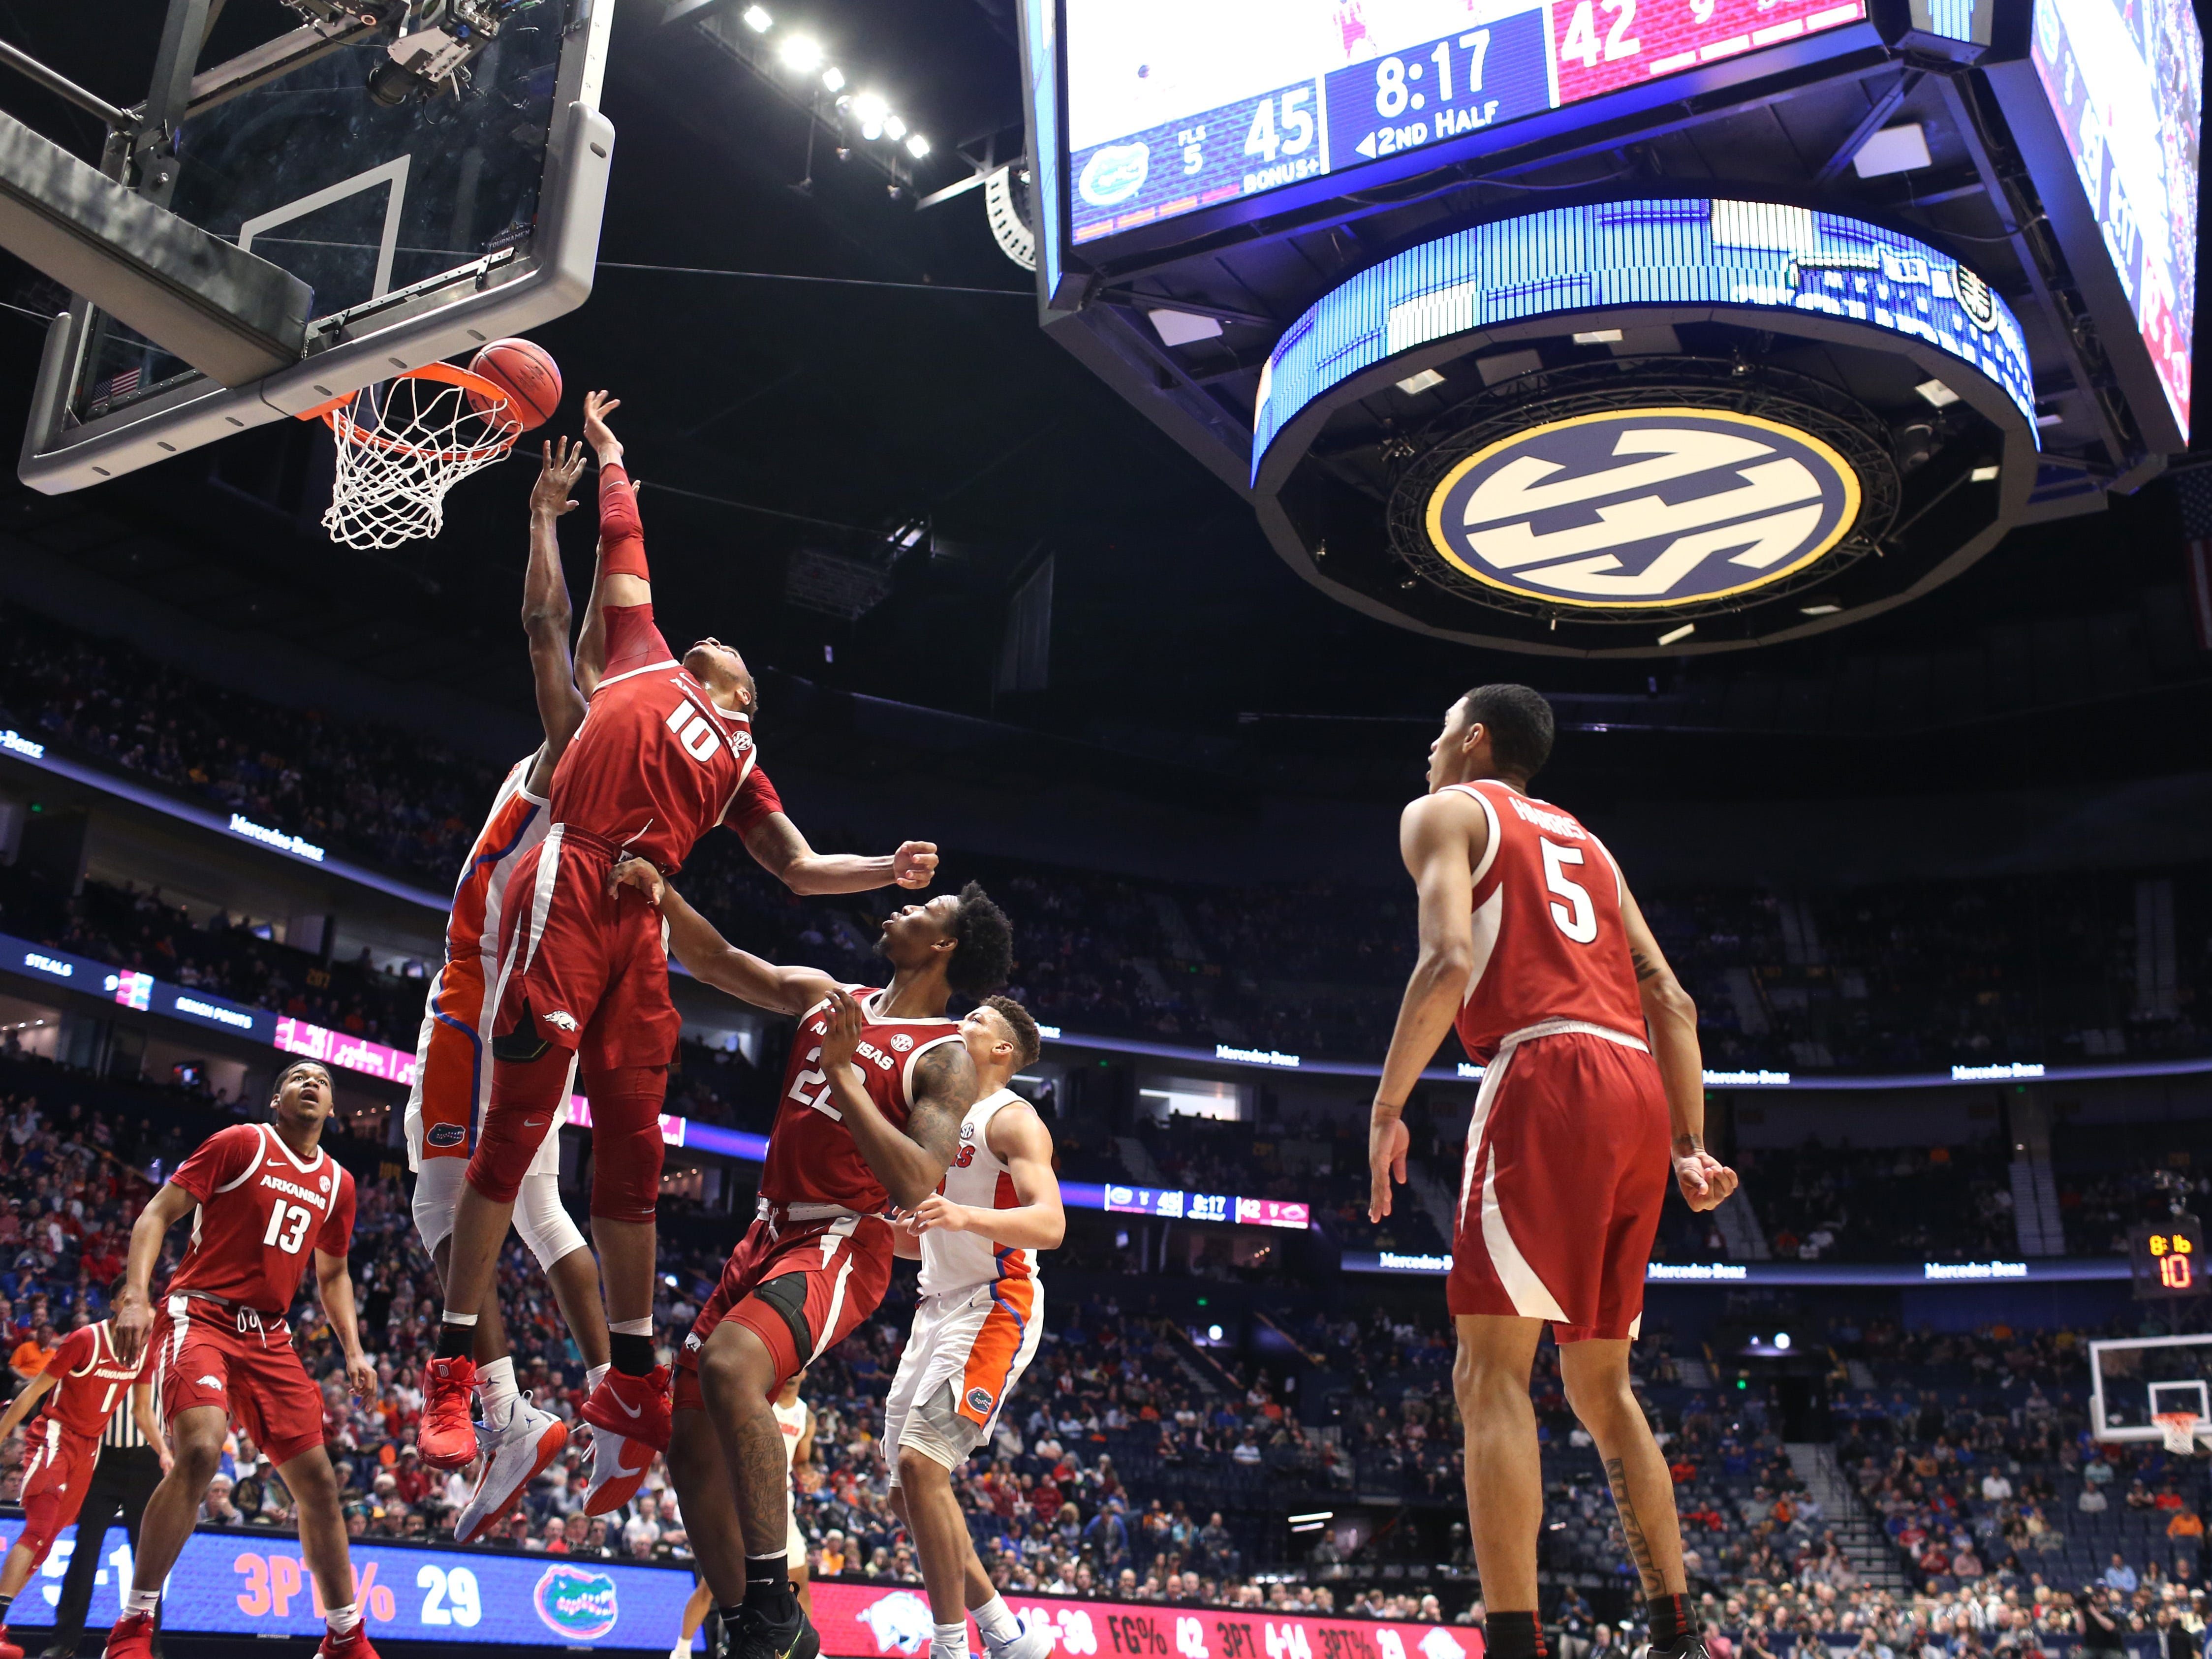 Florida and Arkansas battle under the Gator basket during the second half of the SEC Men's Basketball Tournament game at Bridgestone Arena in Nashville, Tenn., Thursday, March 14, 2019.